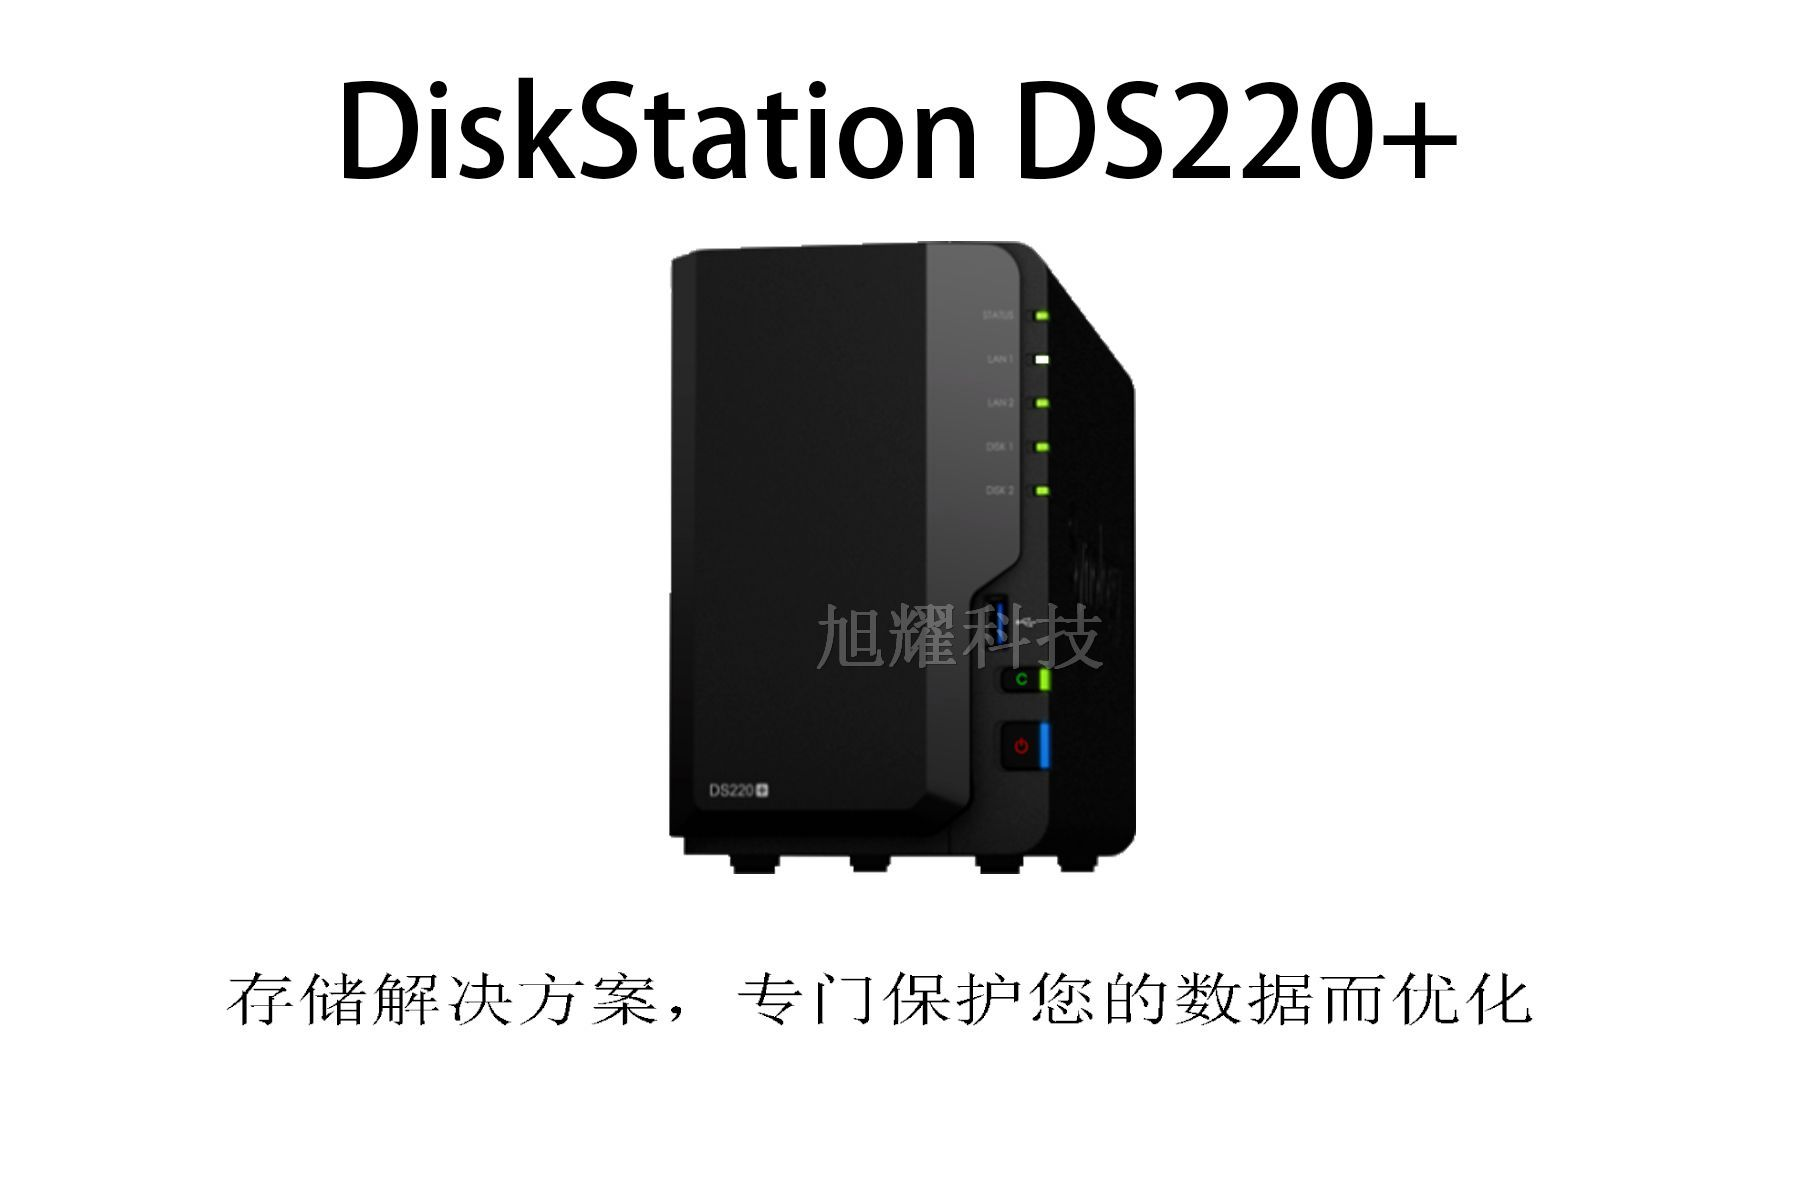 群晖 DiskStation DS220+